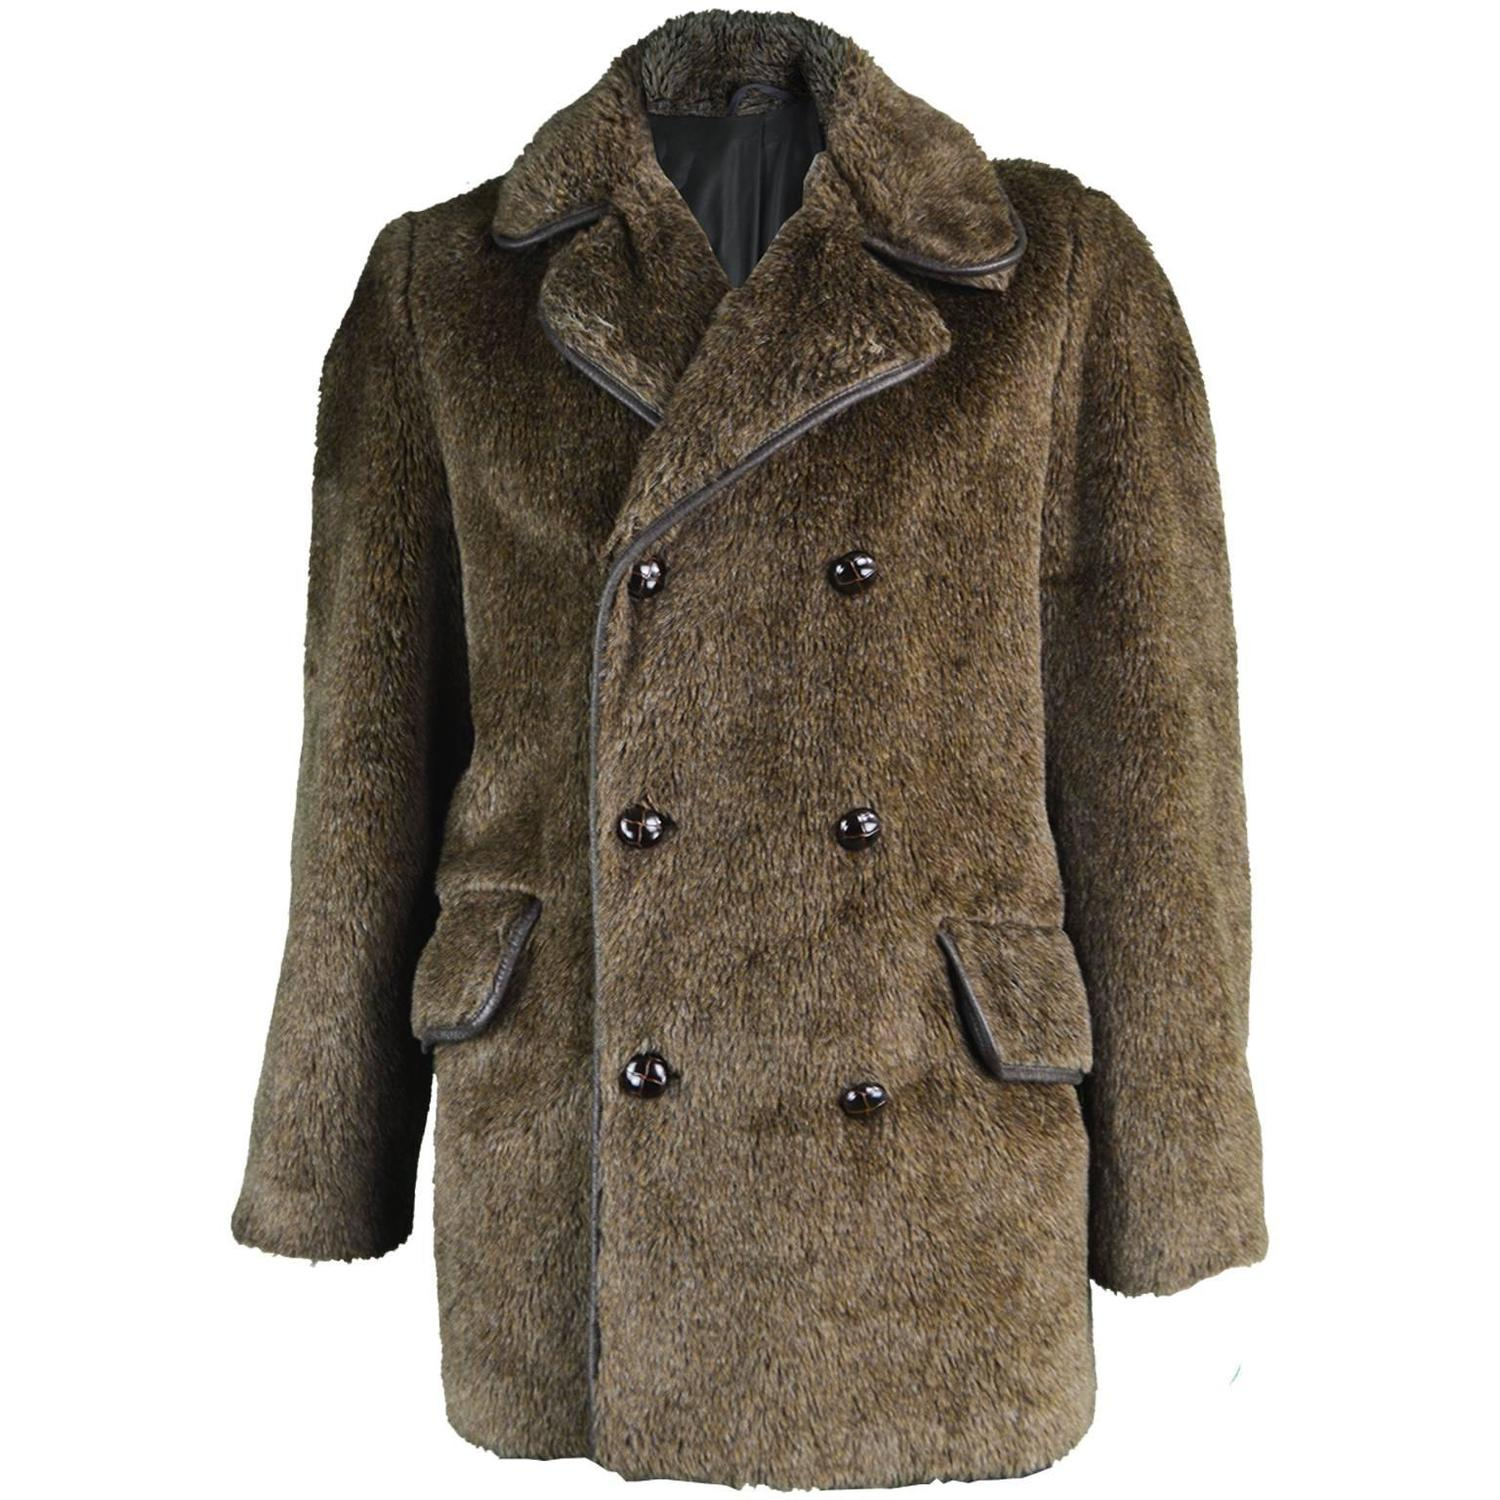 Faux fur coats for men that are catalogued here are made out for best quality, high fashion and great look. Mens who wish to wear a faux fur coat that will last long and face the worst climates can opt for a faux fur coat from MensUSA.